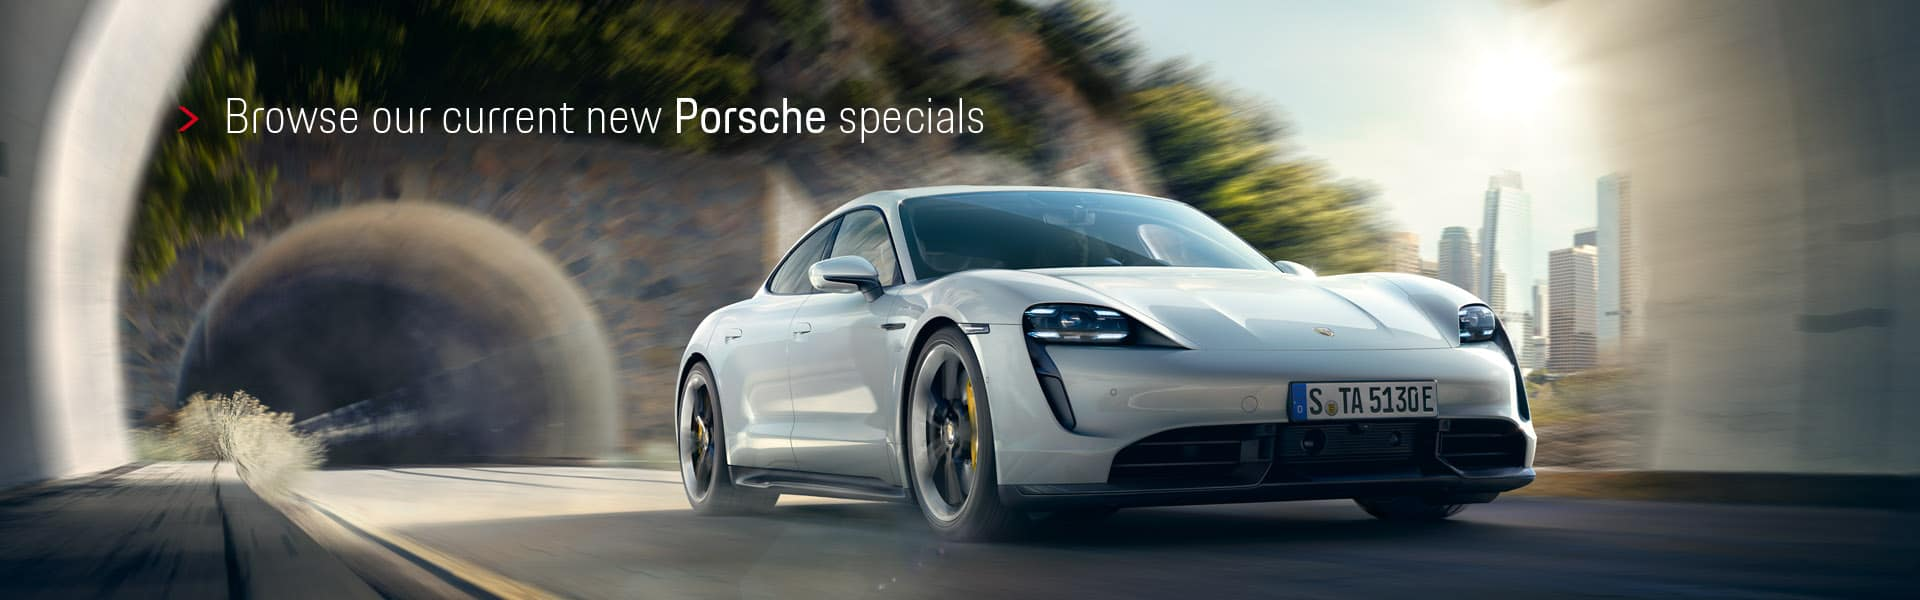 Browse our current new Porsche specials - Taycan